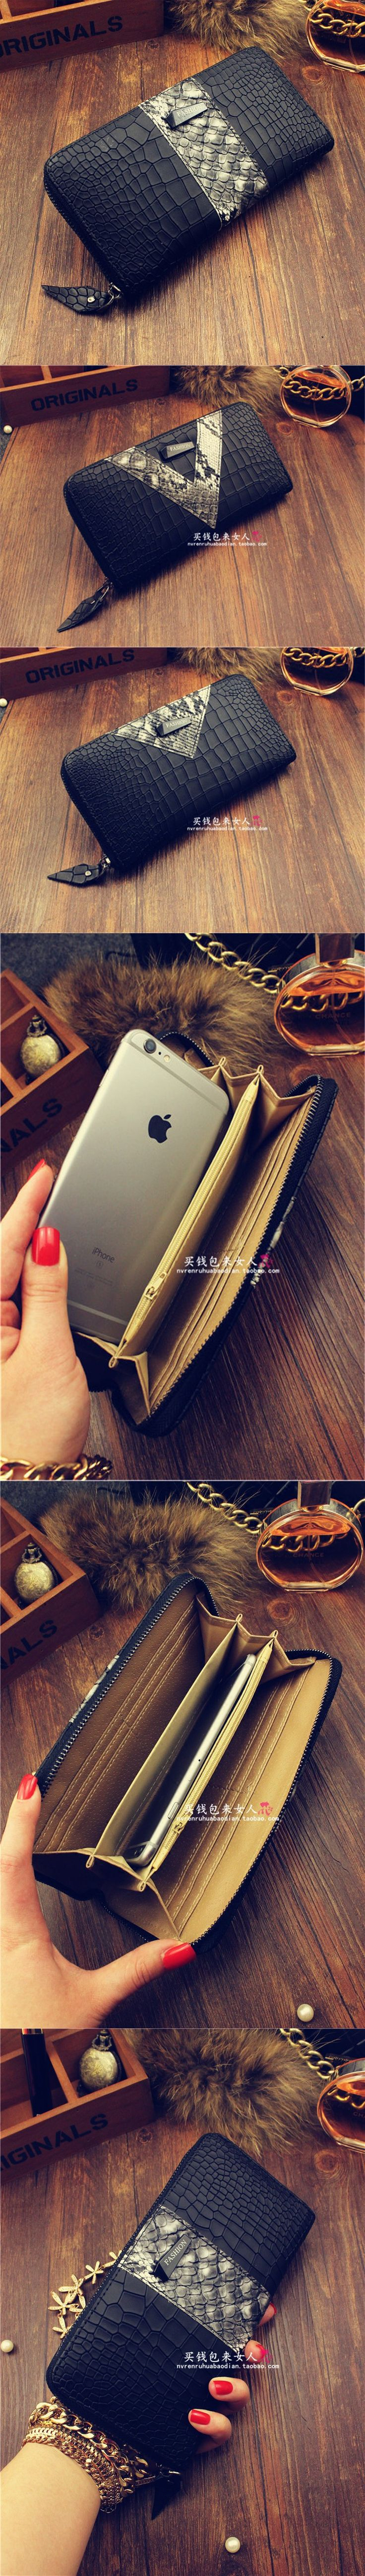 Women Wallets Brand High Quality Leather Wallet Female Zipper Fashion Long Women Wallets And Purse Genuine Leather Wallet Brand $21.88